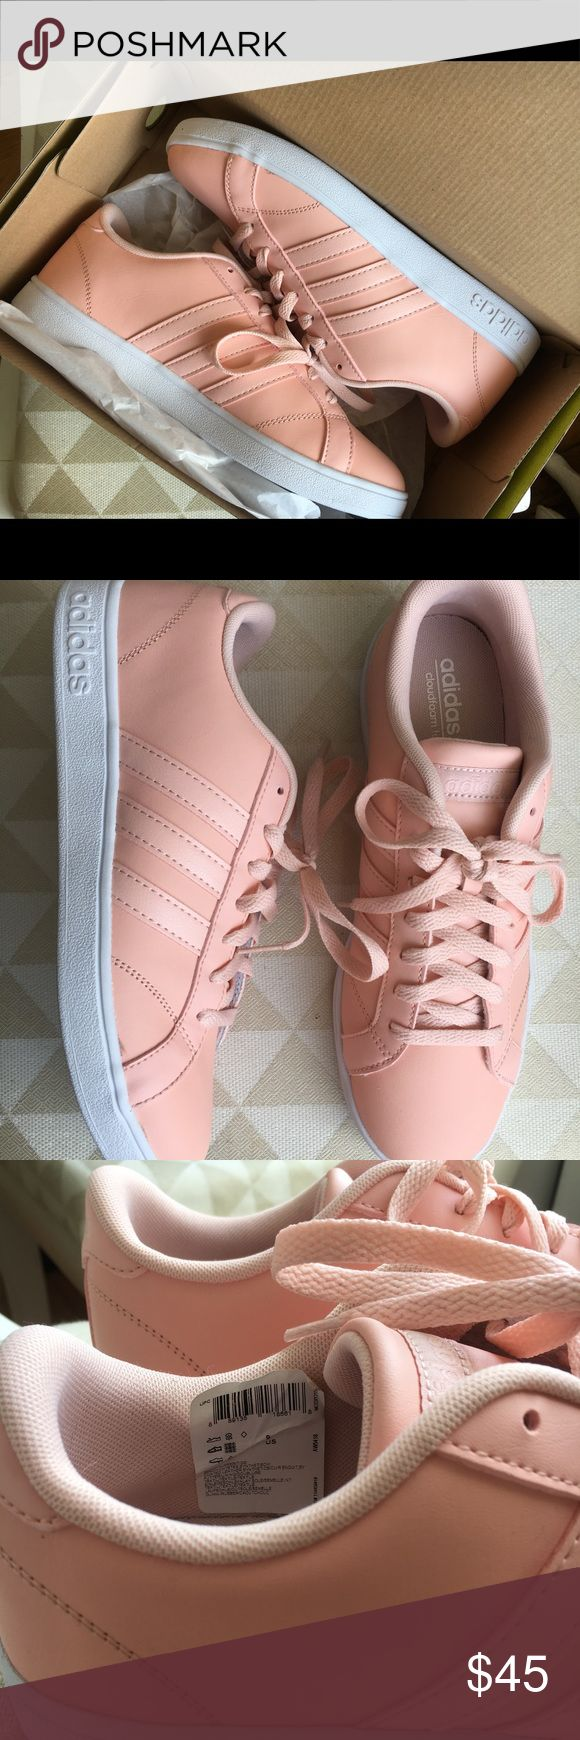 Adidas Neo Women's Baseline in Blush These blush/pink sneakers are SO cute. Bought in two sizes (I'm usually a 9 but adidas run big) and didn't return in time.  Leather upper w/signature 3 stripes  Padded tongue and collar  Cloud form comfort insole  Textured Rubber outsole adidas Shoes Sneakers